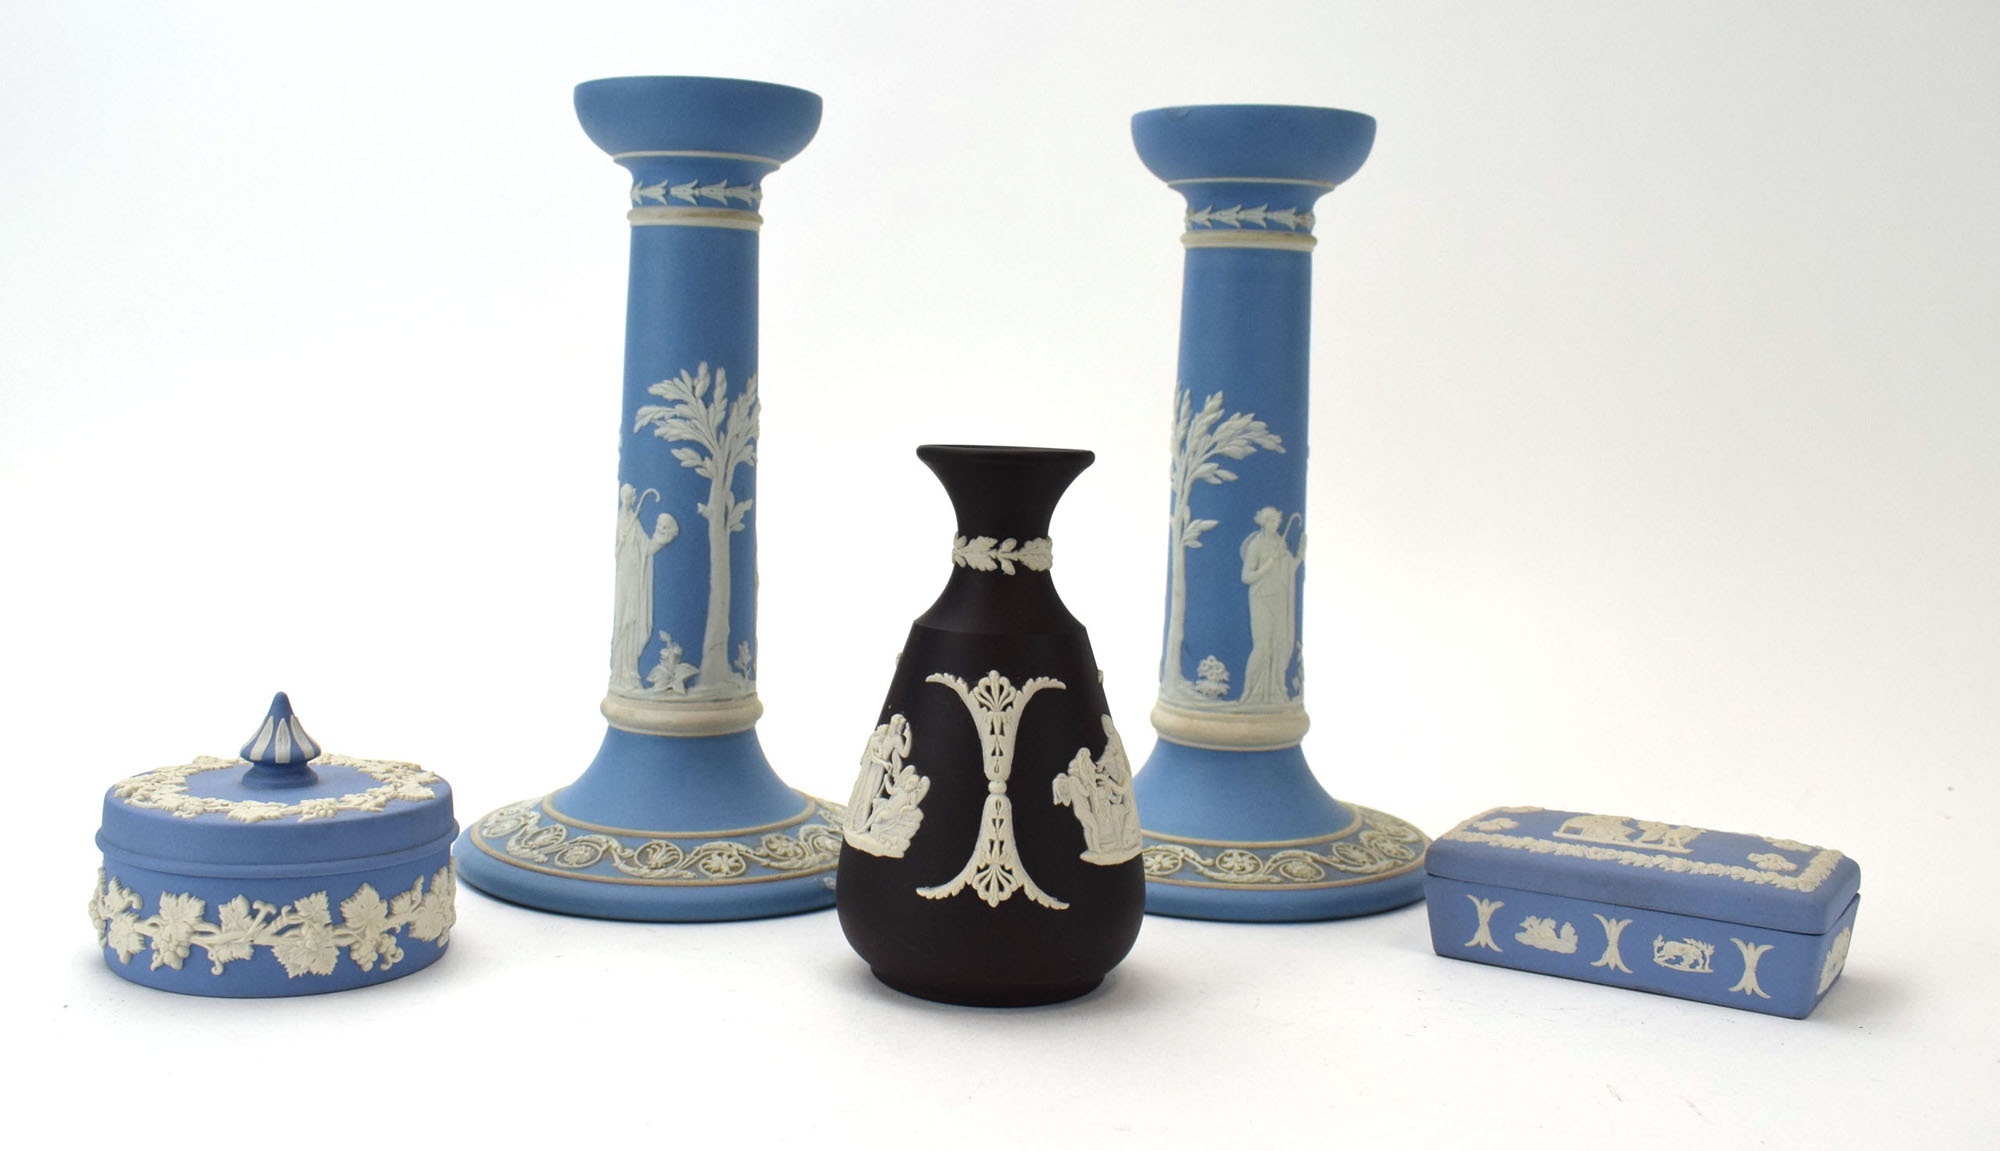 RR 411 - A pair of Wedgwood jasperware candlesticks typically decorated in the Neo-Classical manner,